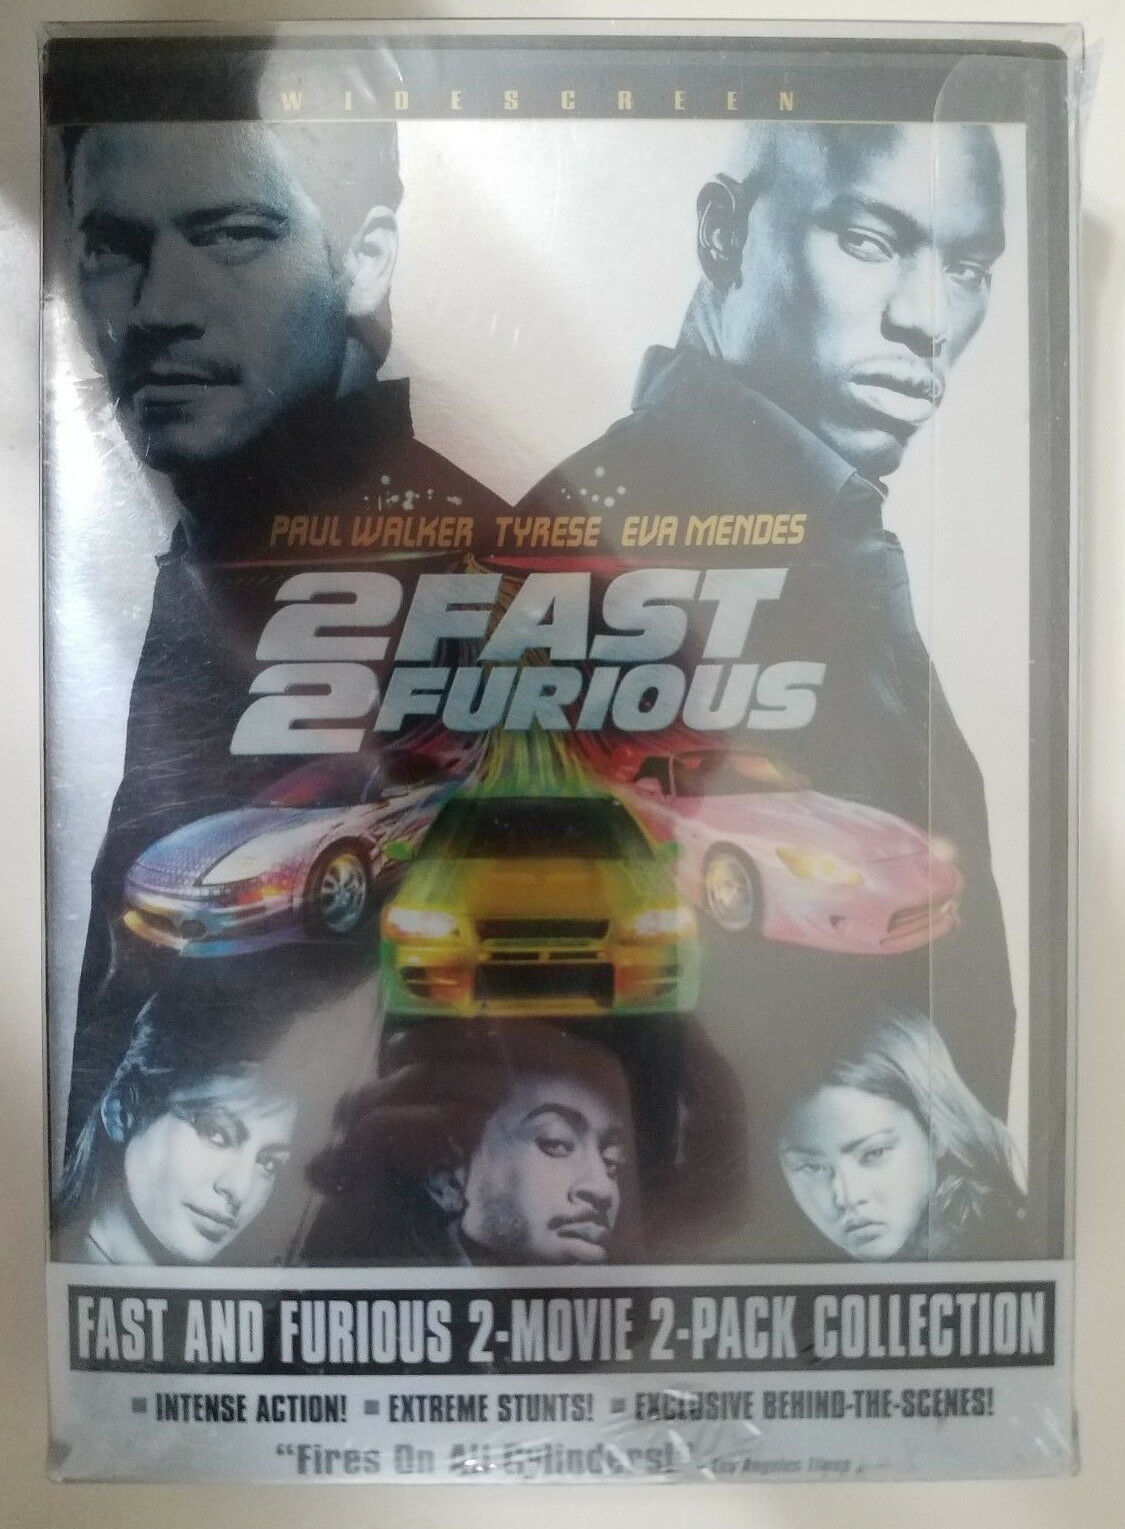 fast and furious 2 movie